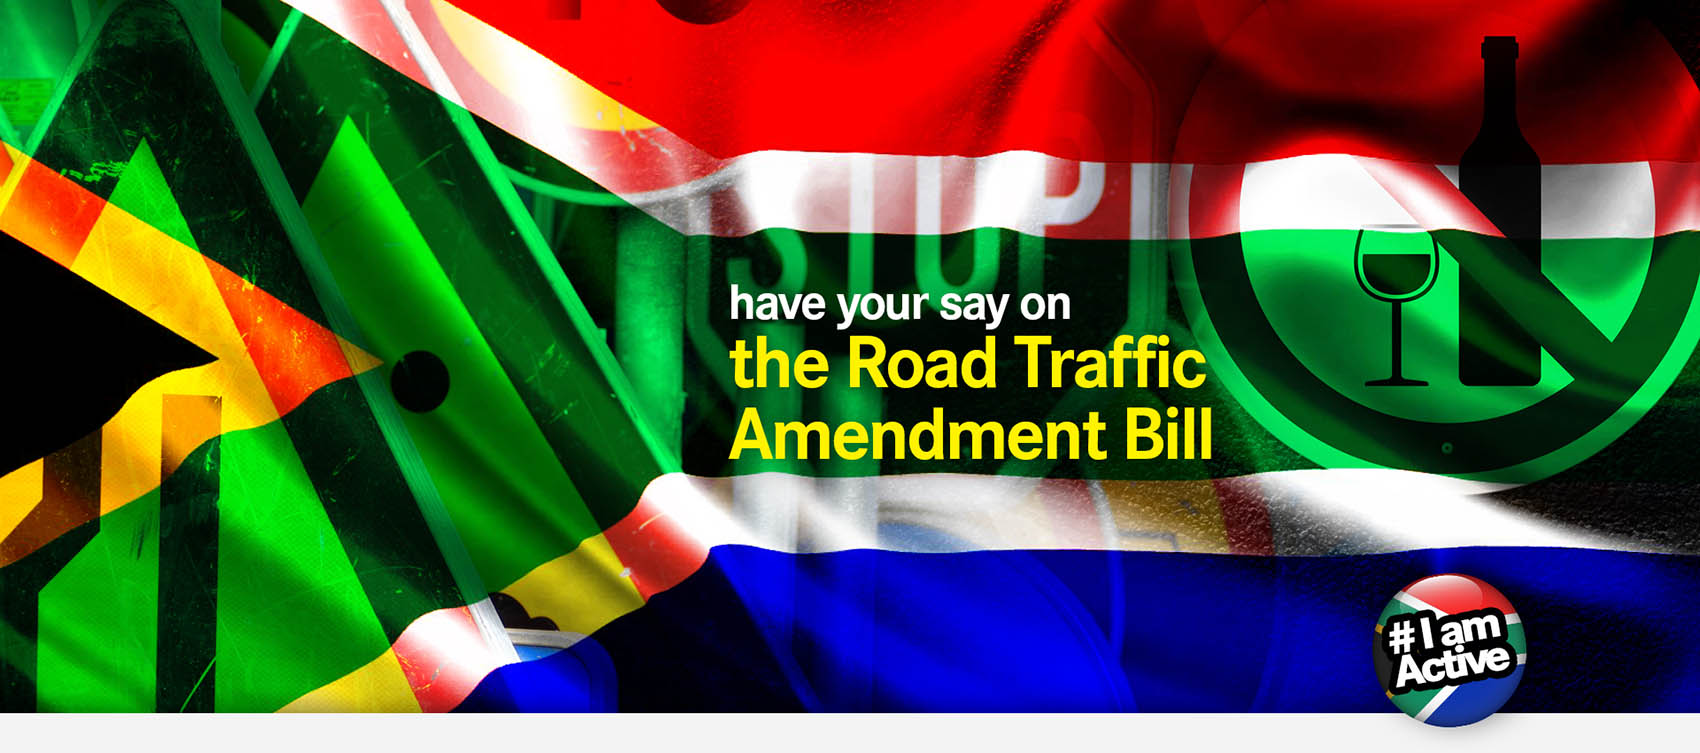 Have your say on the Road Traffic Amendment Bill DearSA road traffic amendment